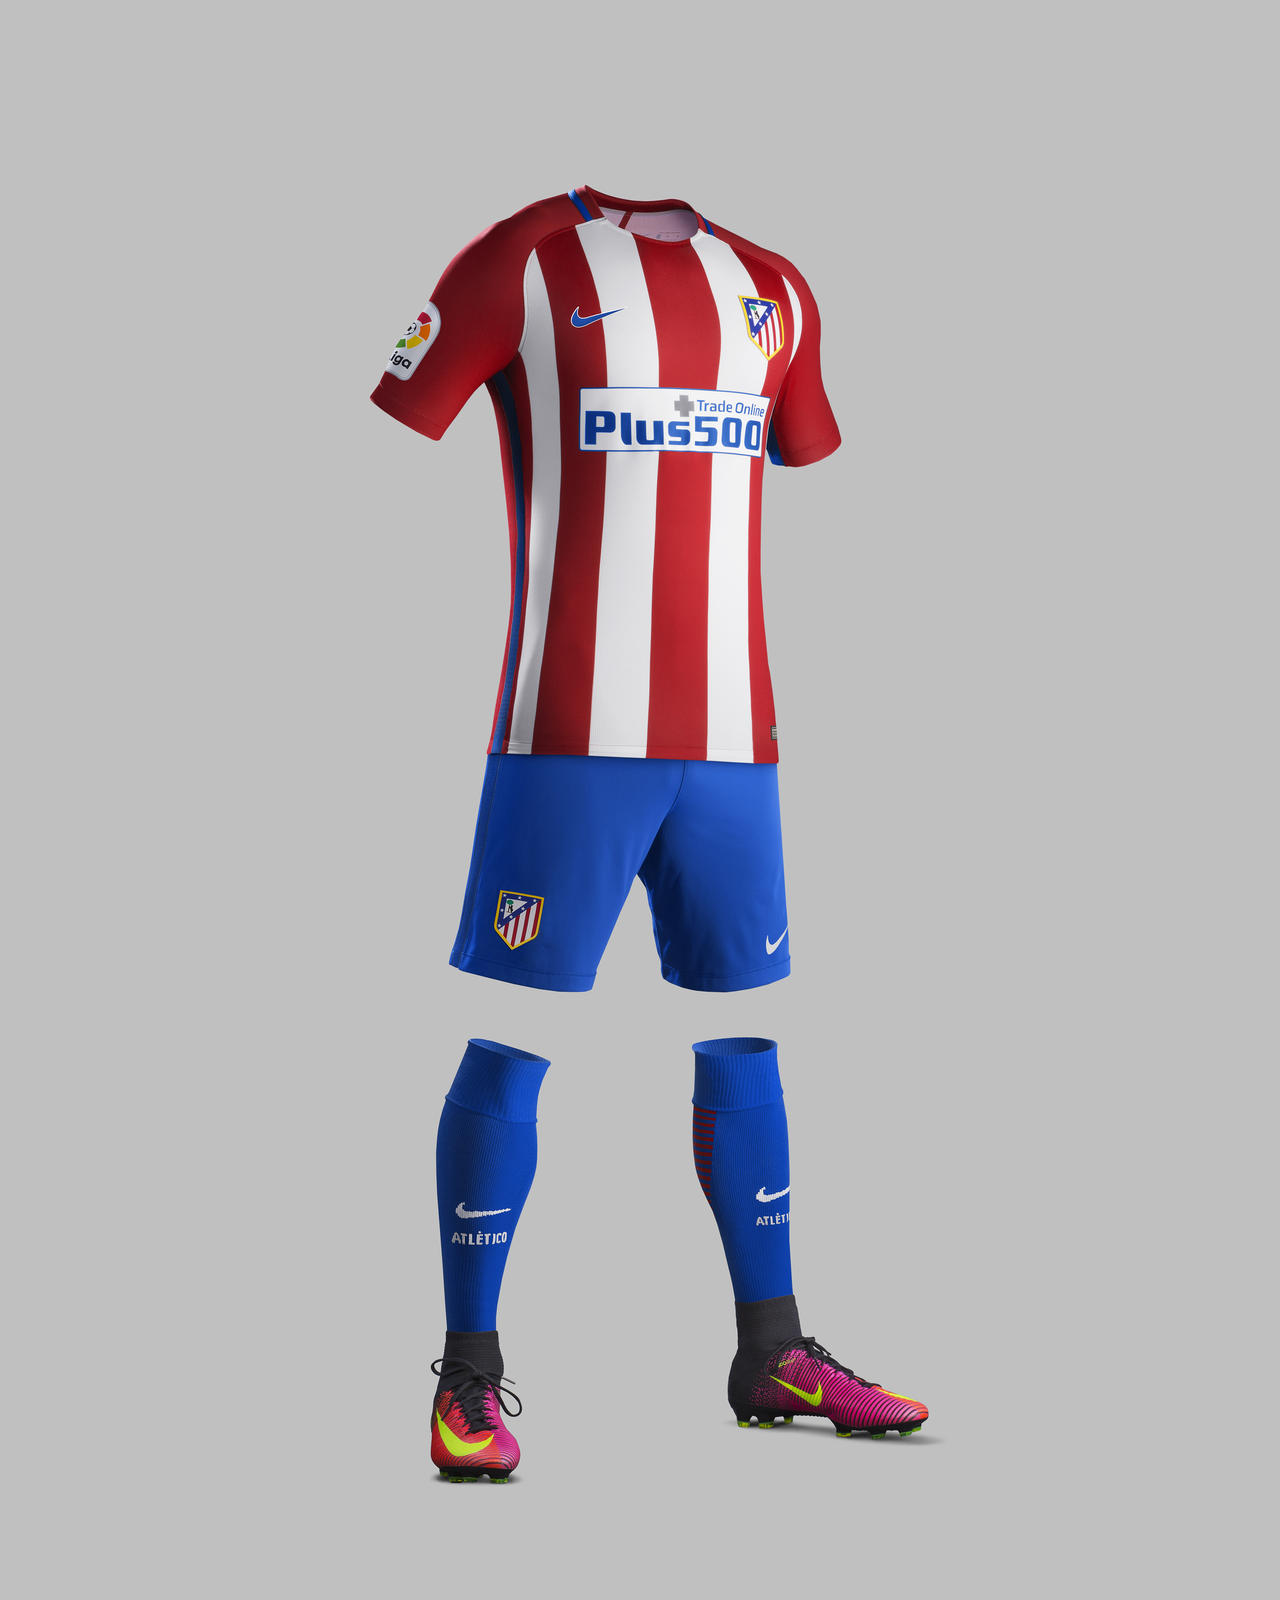 750e5256c THE HOME KIT. Su16_CK_Comms_H_Full Body_Match_AT Madrid_R. The Atlético de  Madrid Home ...